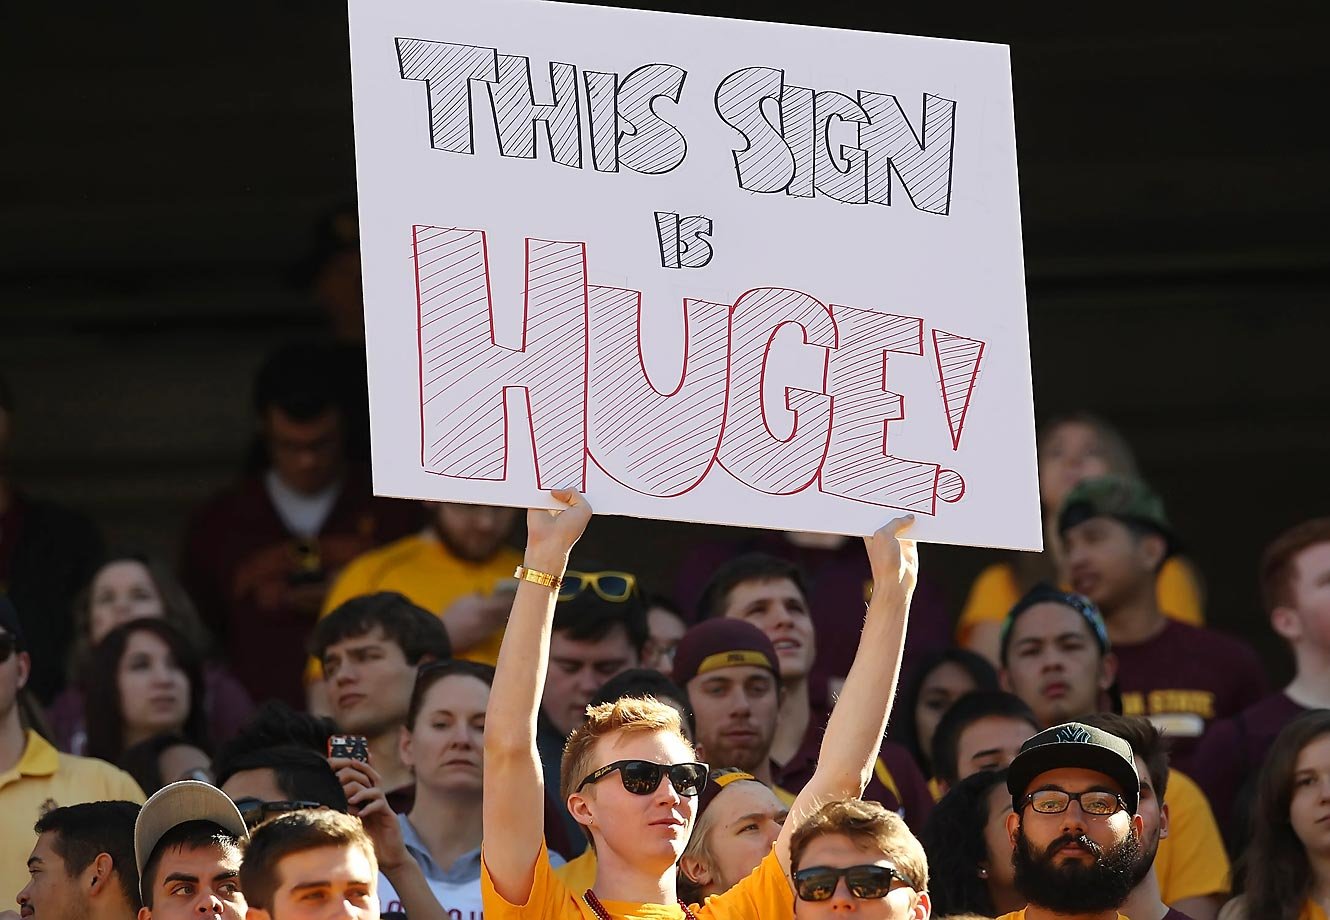 This ASU student has a big sign.